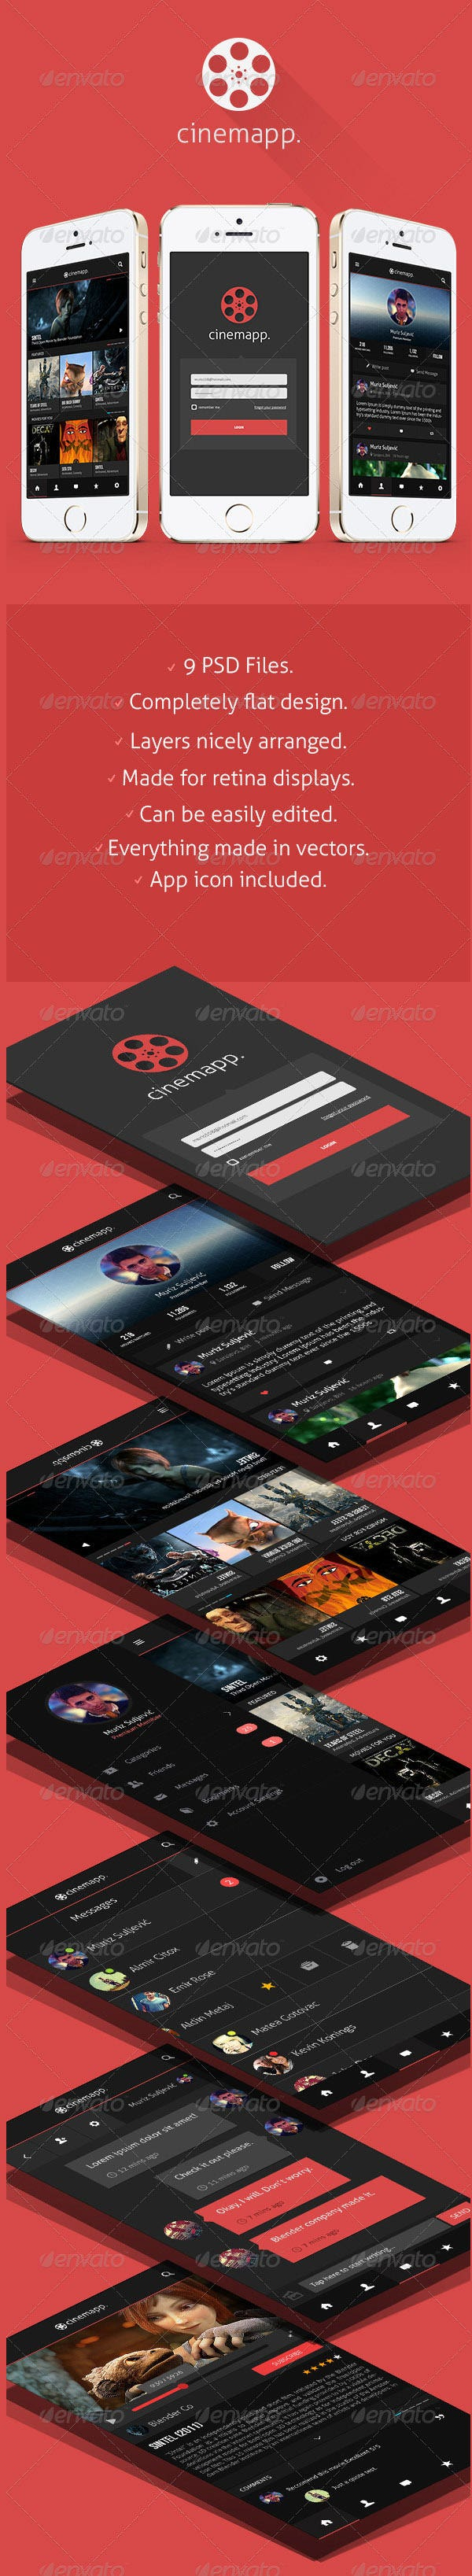 cinemapp flat app design